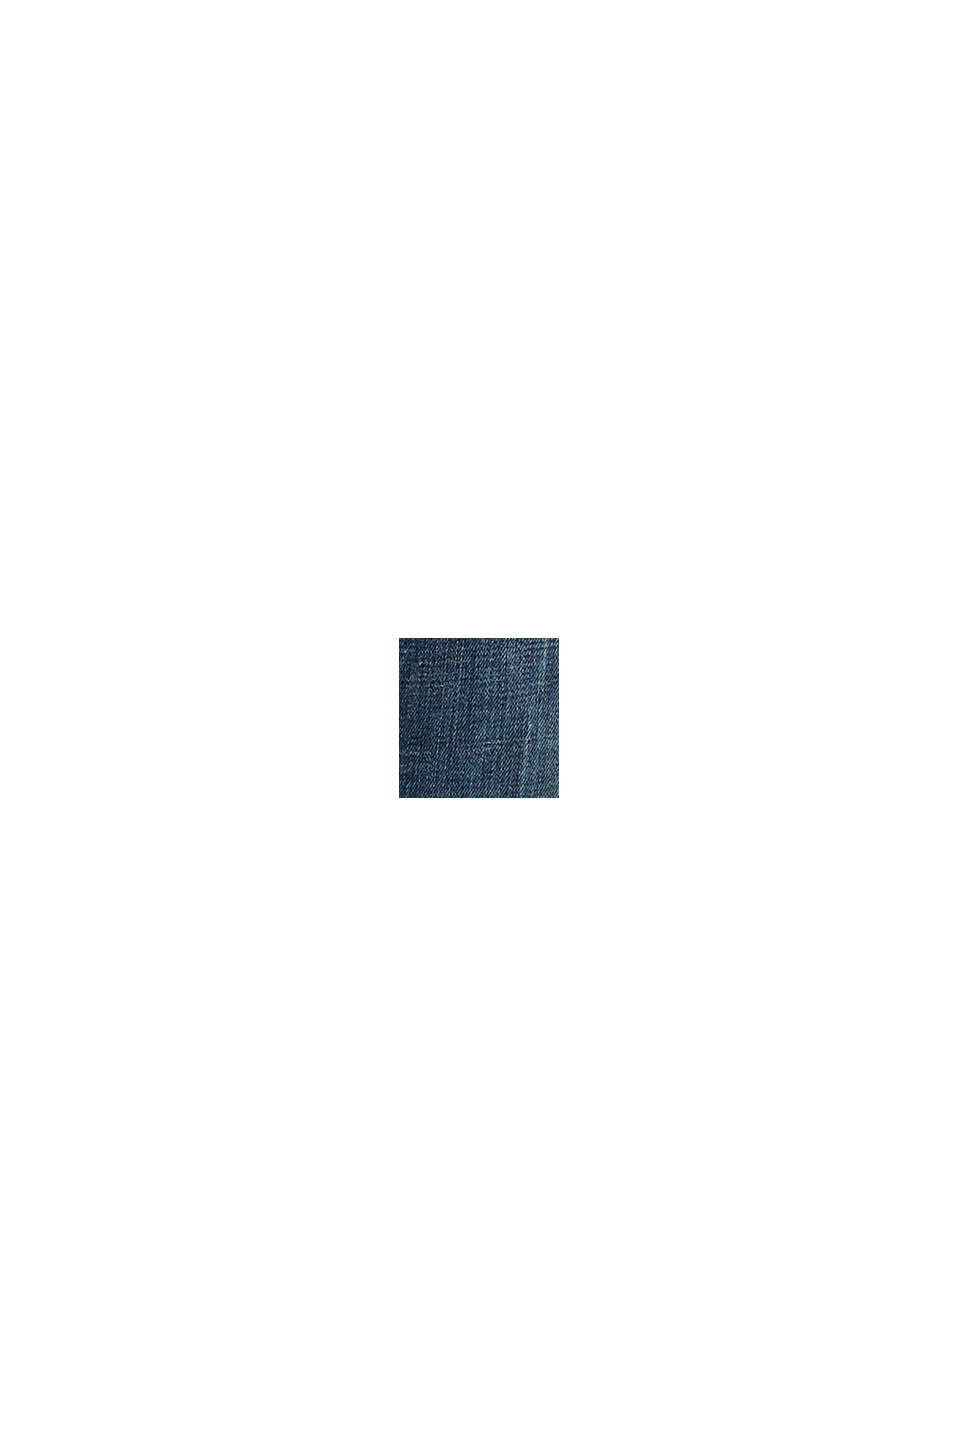 Ankellange shaping-jeans, BLUE DARK WASHED, swatch